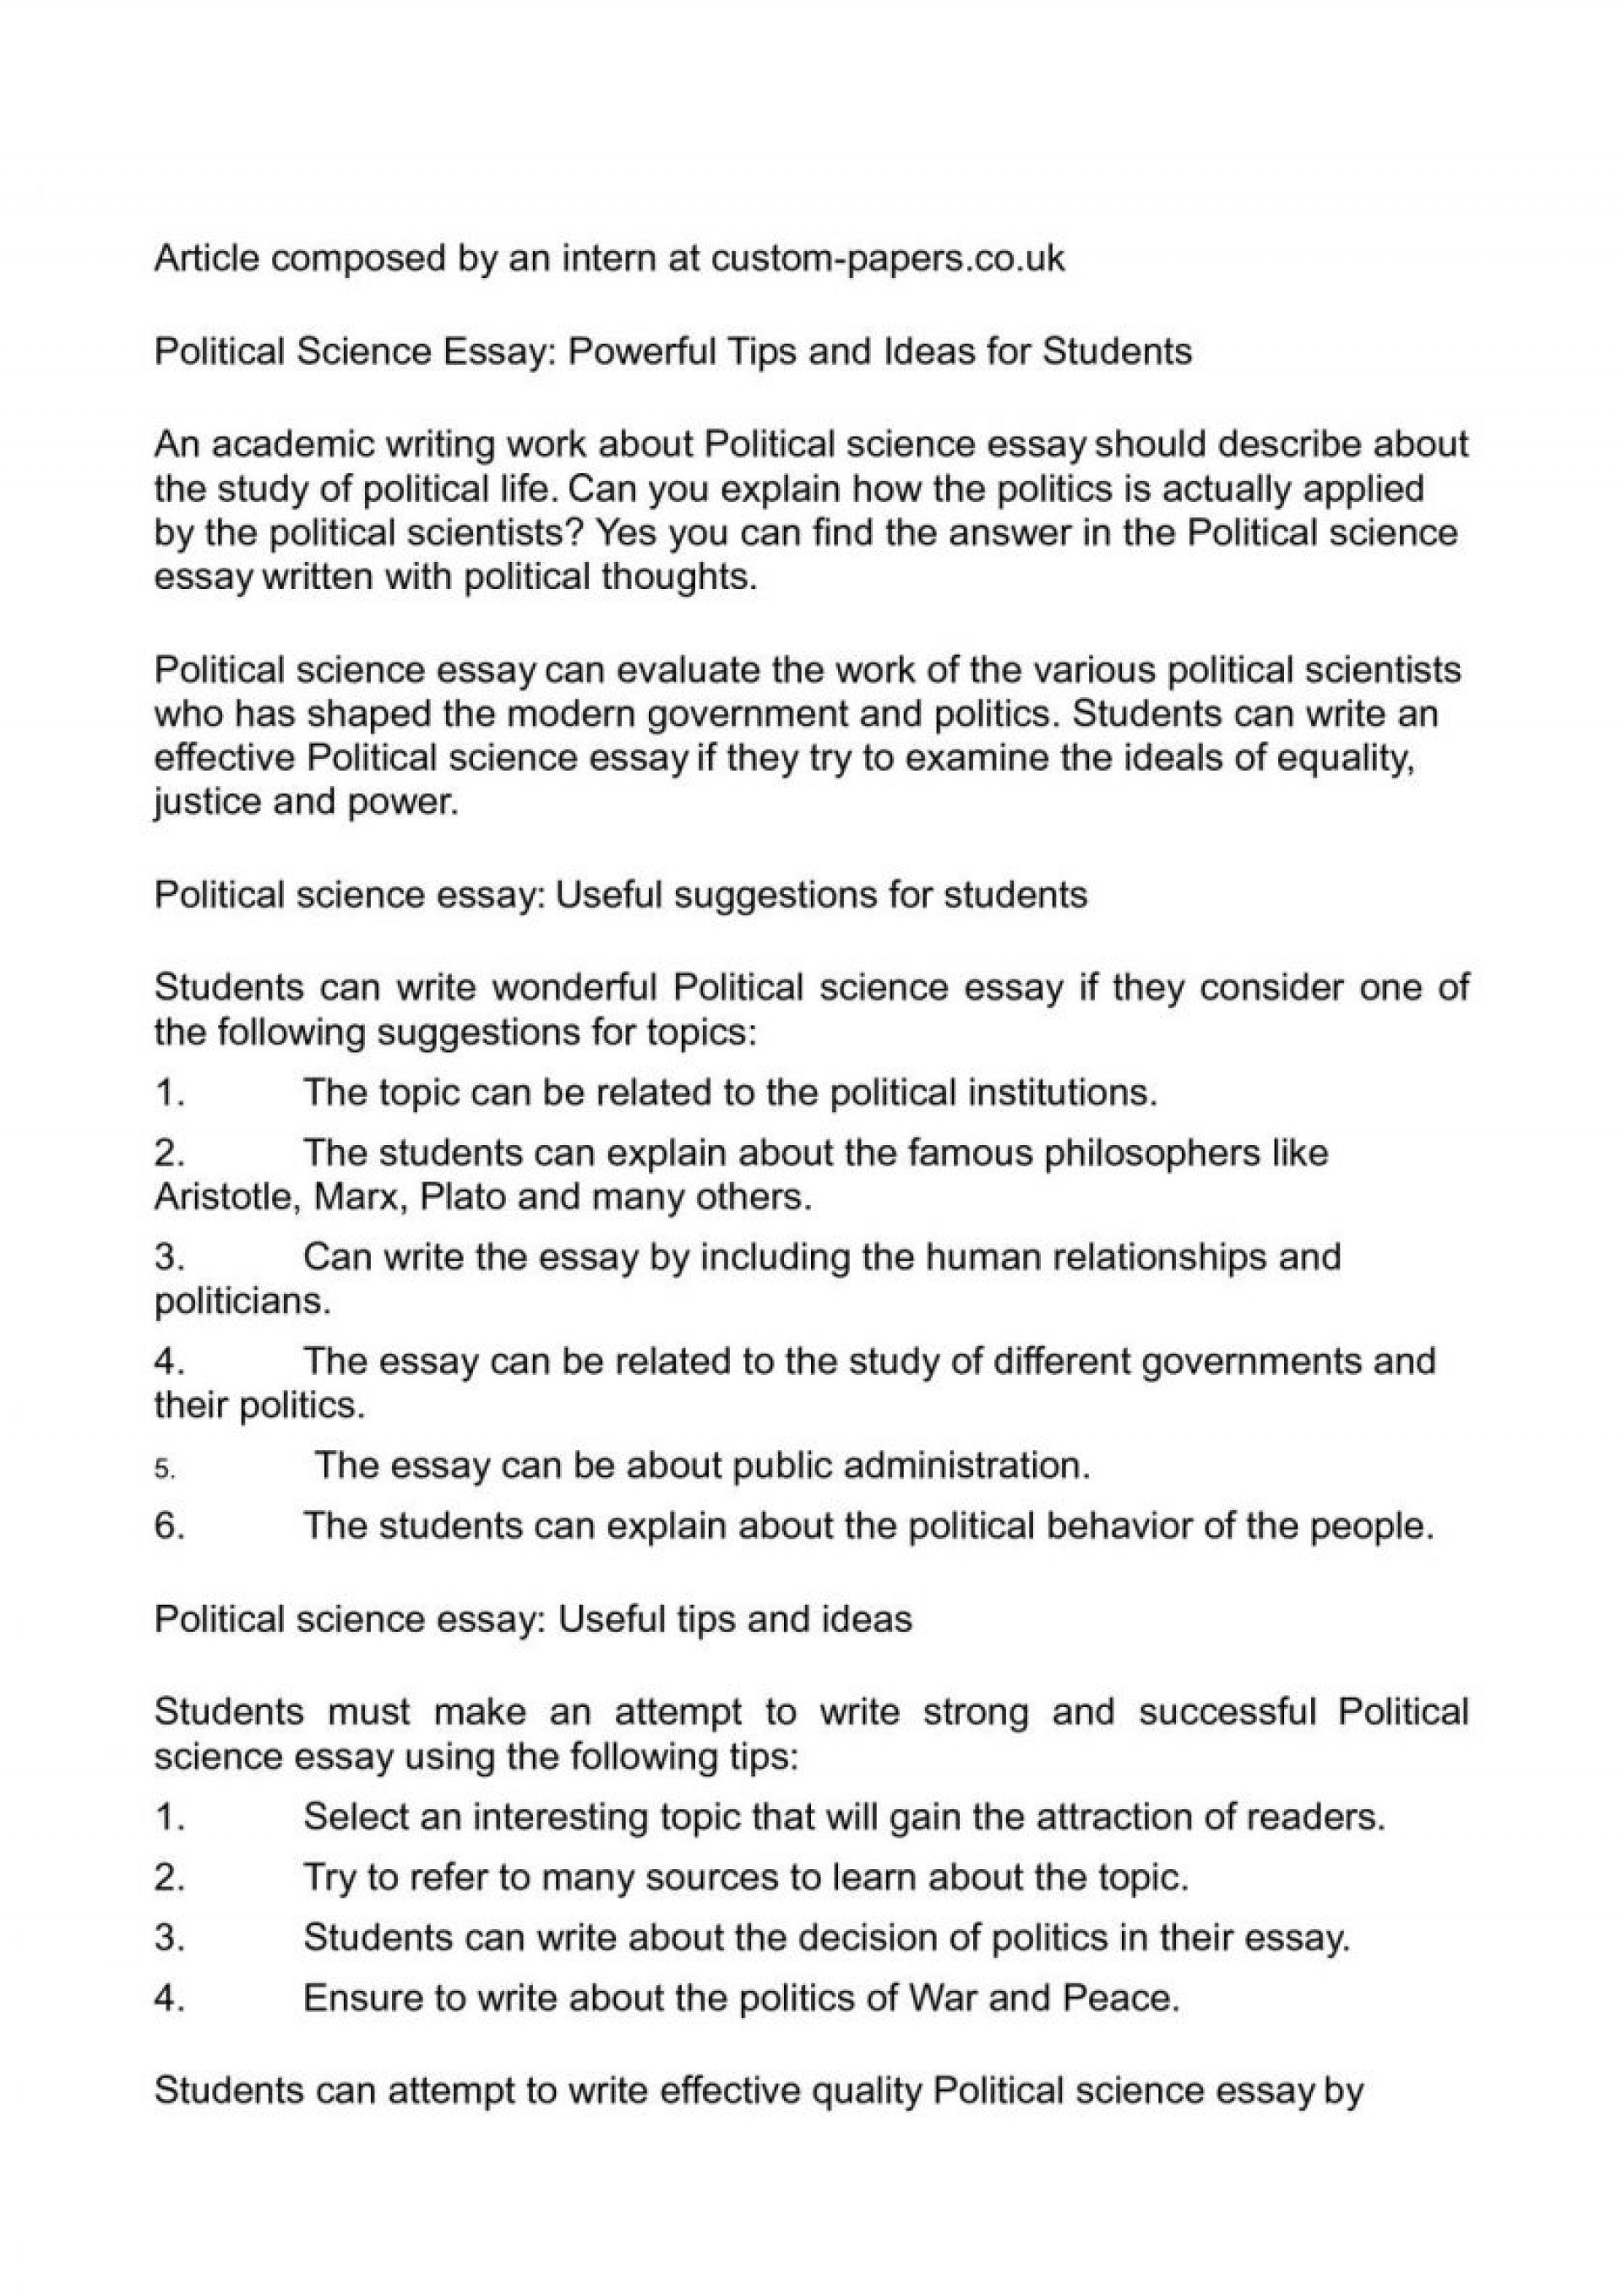 017 Essay Macbeth Ideas Science Argumentativecs Good Photo Easy To Write Abo About Research Paper Personal Descriptive Persuasive College Synthesis Informative Narrative 840x1189 Fearsome Topics A On Fun History 1920